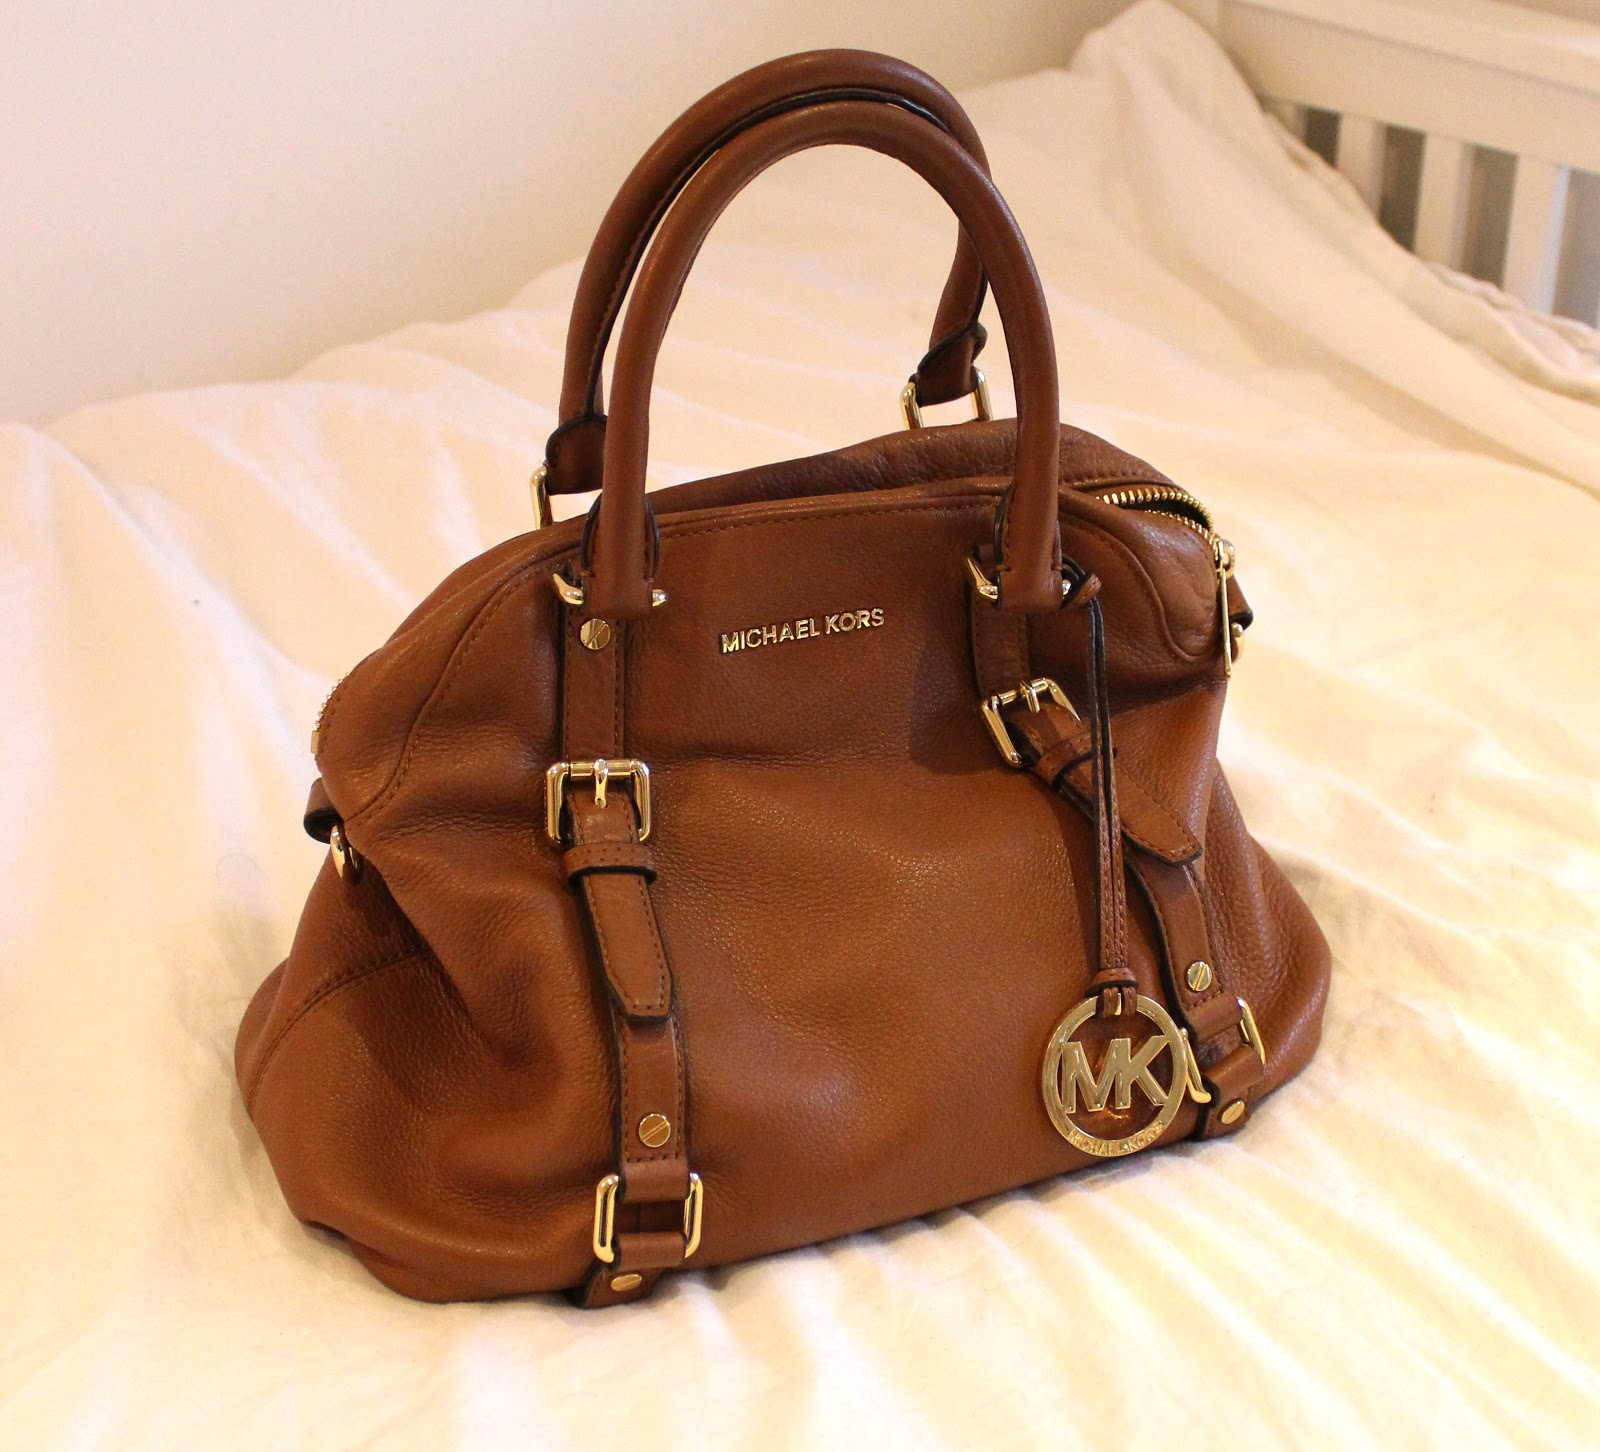 Related: michael kors handbag used coach handbags michael kors wallet michael kors handbag crossbody kate spade handbag coach michael kors backpack michael kors handbag and wallet michael kors handbag black michael kors handbag new.